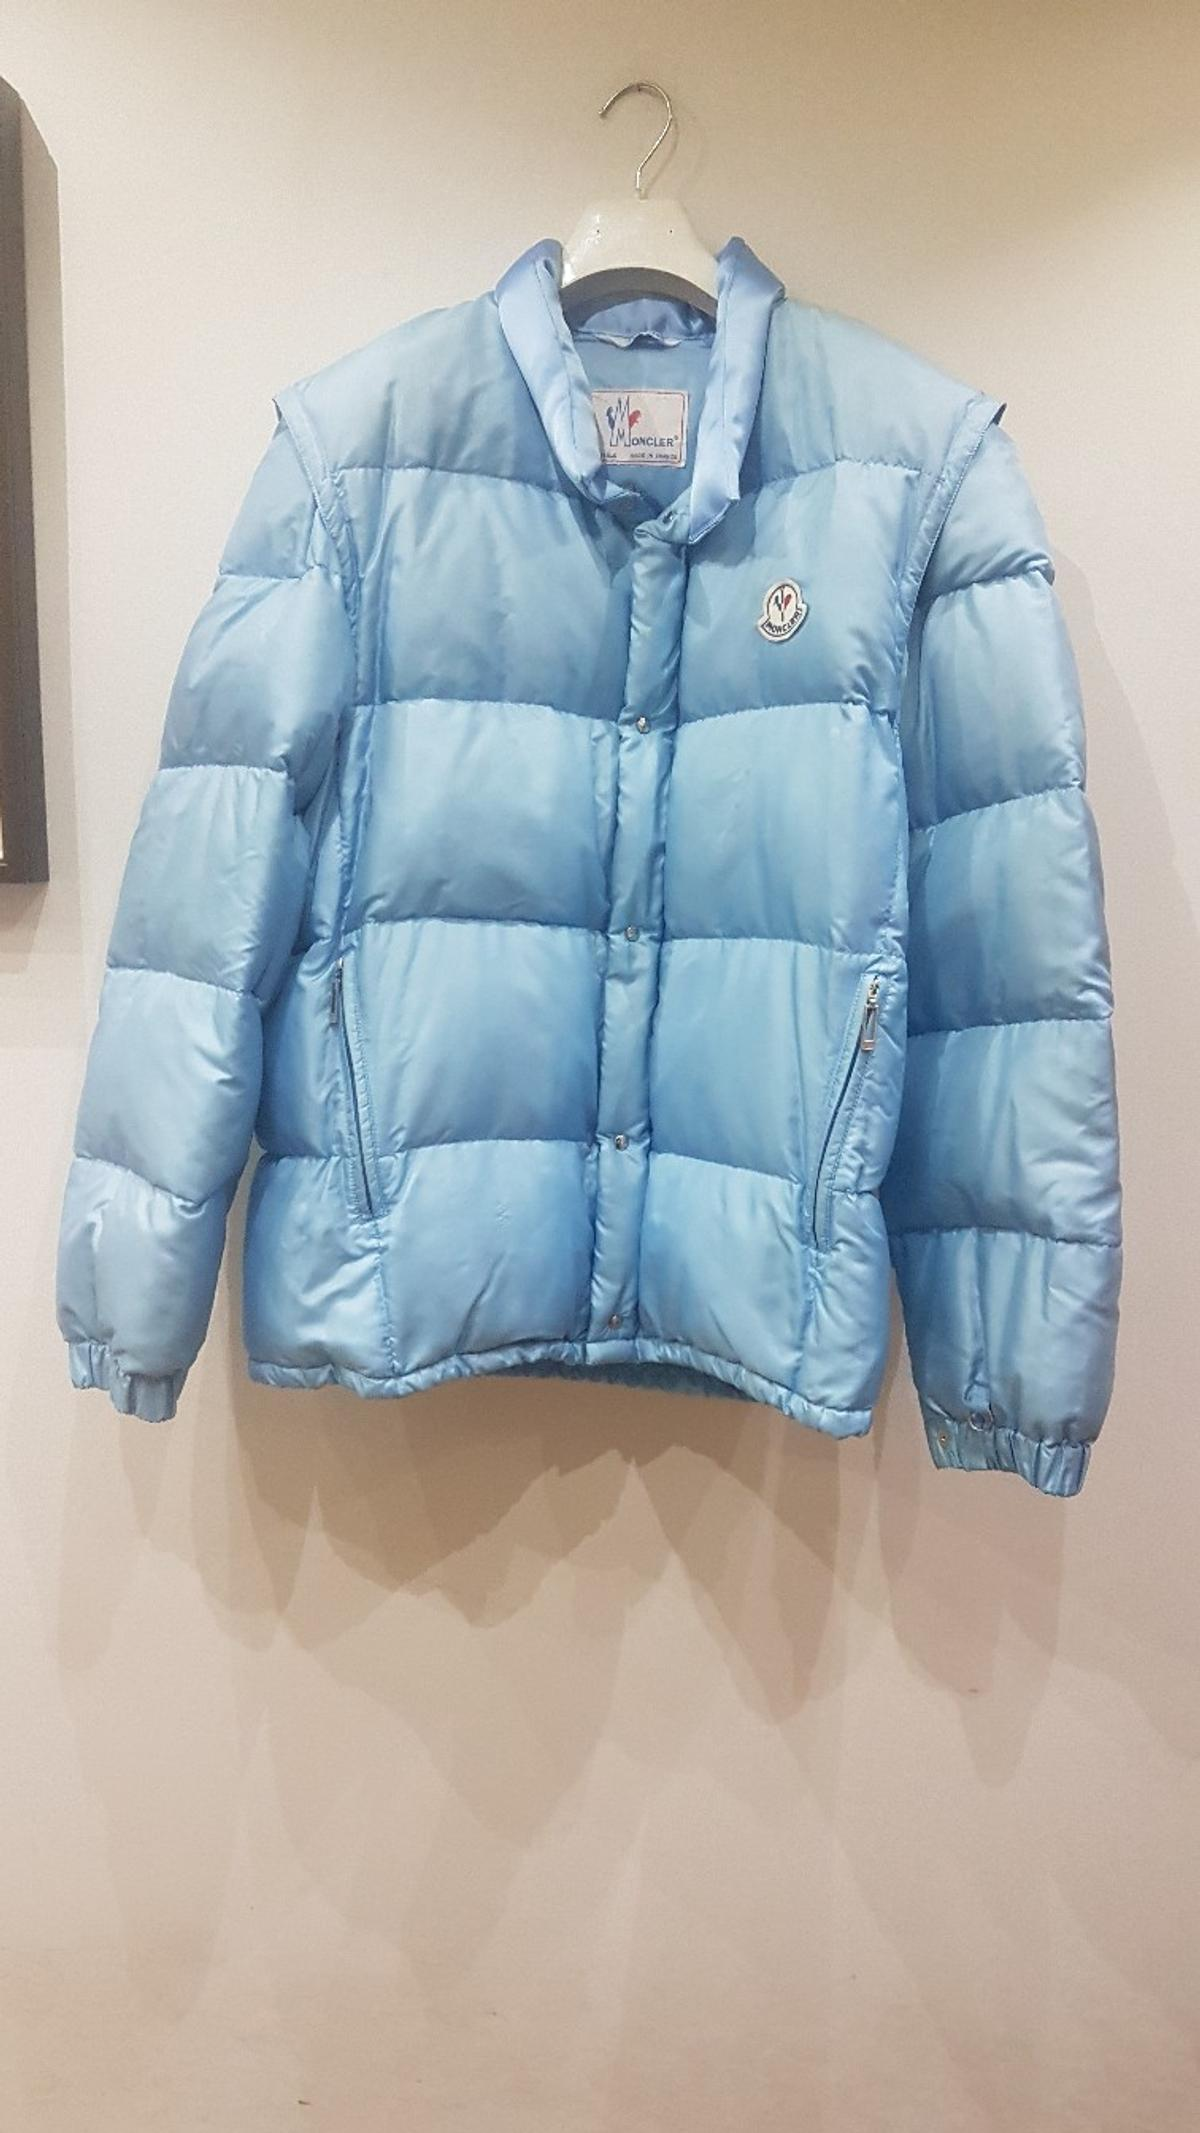 new products 3ff63 7f4ab Moncler Grenoble azzurro in 20134 Milano for €175.00 for ...